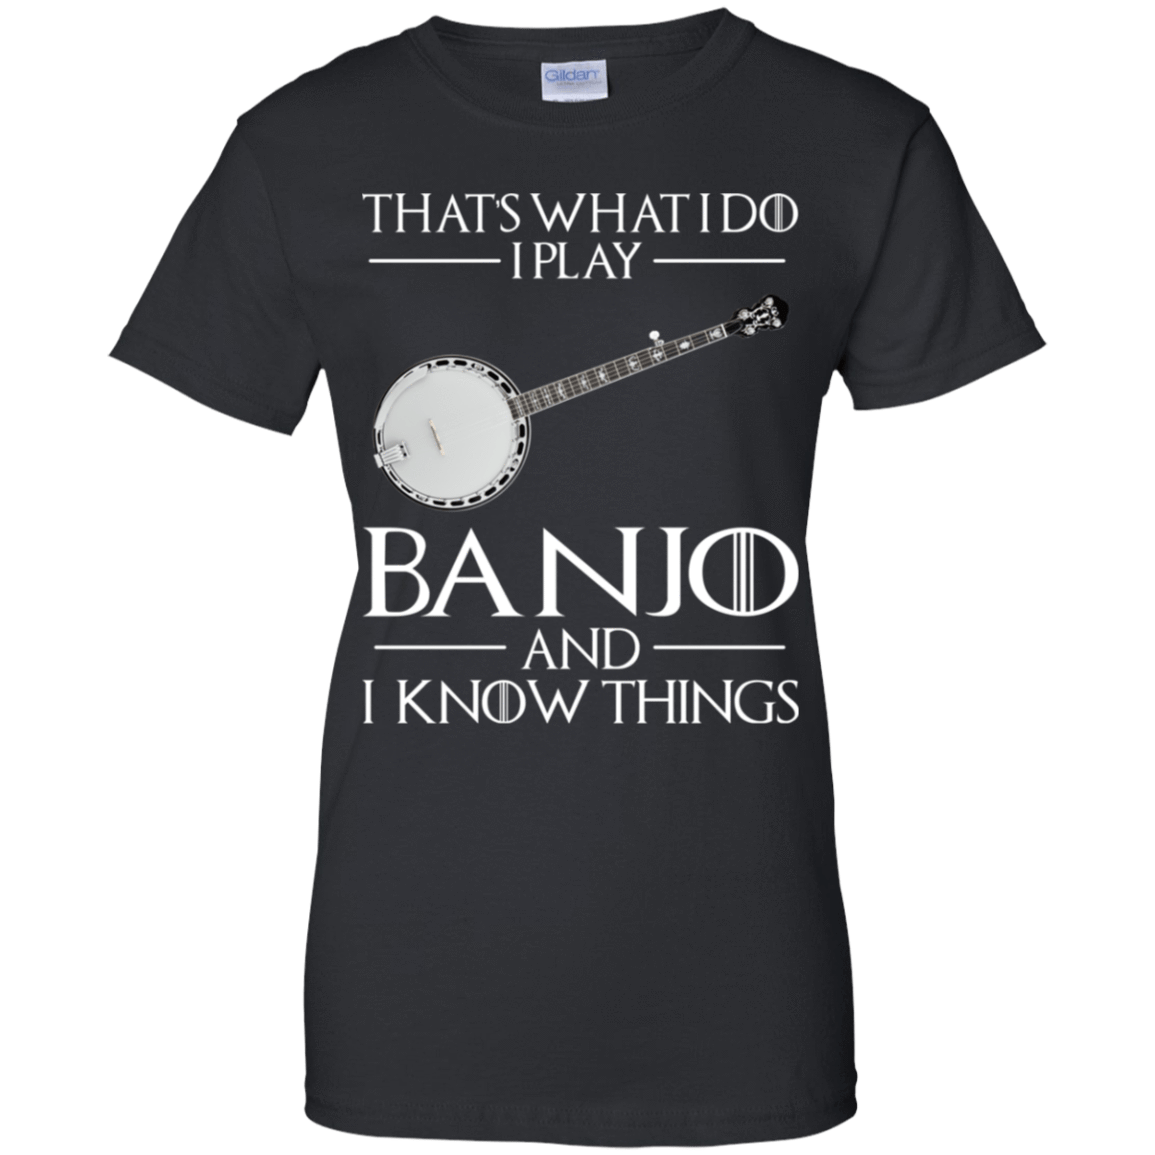 That's What I Do I Play Banjo And I Know Things 939-9248-73428608-44695 - Tee Ript